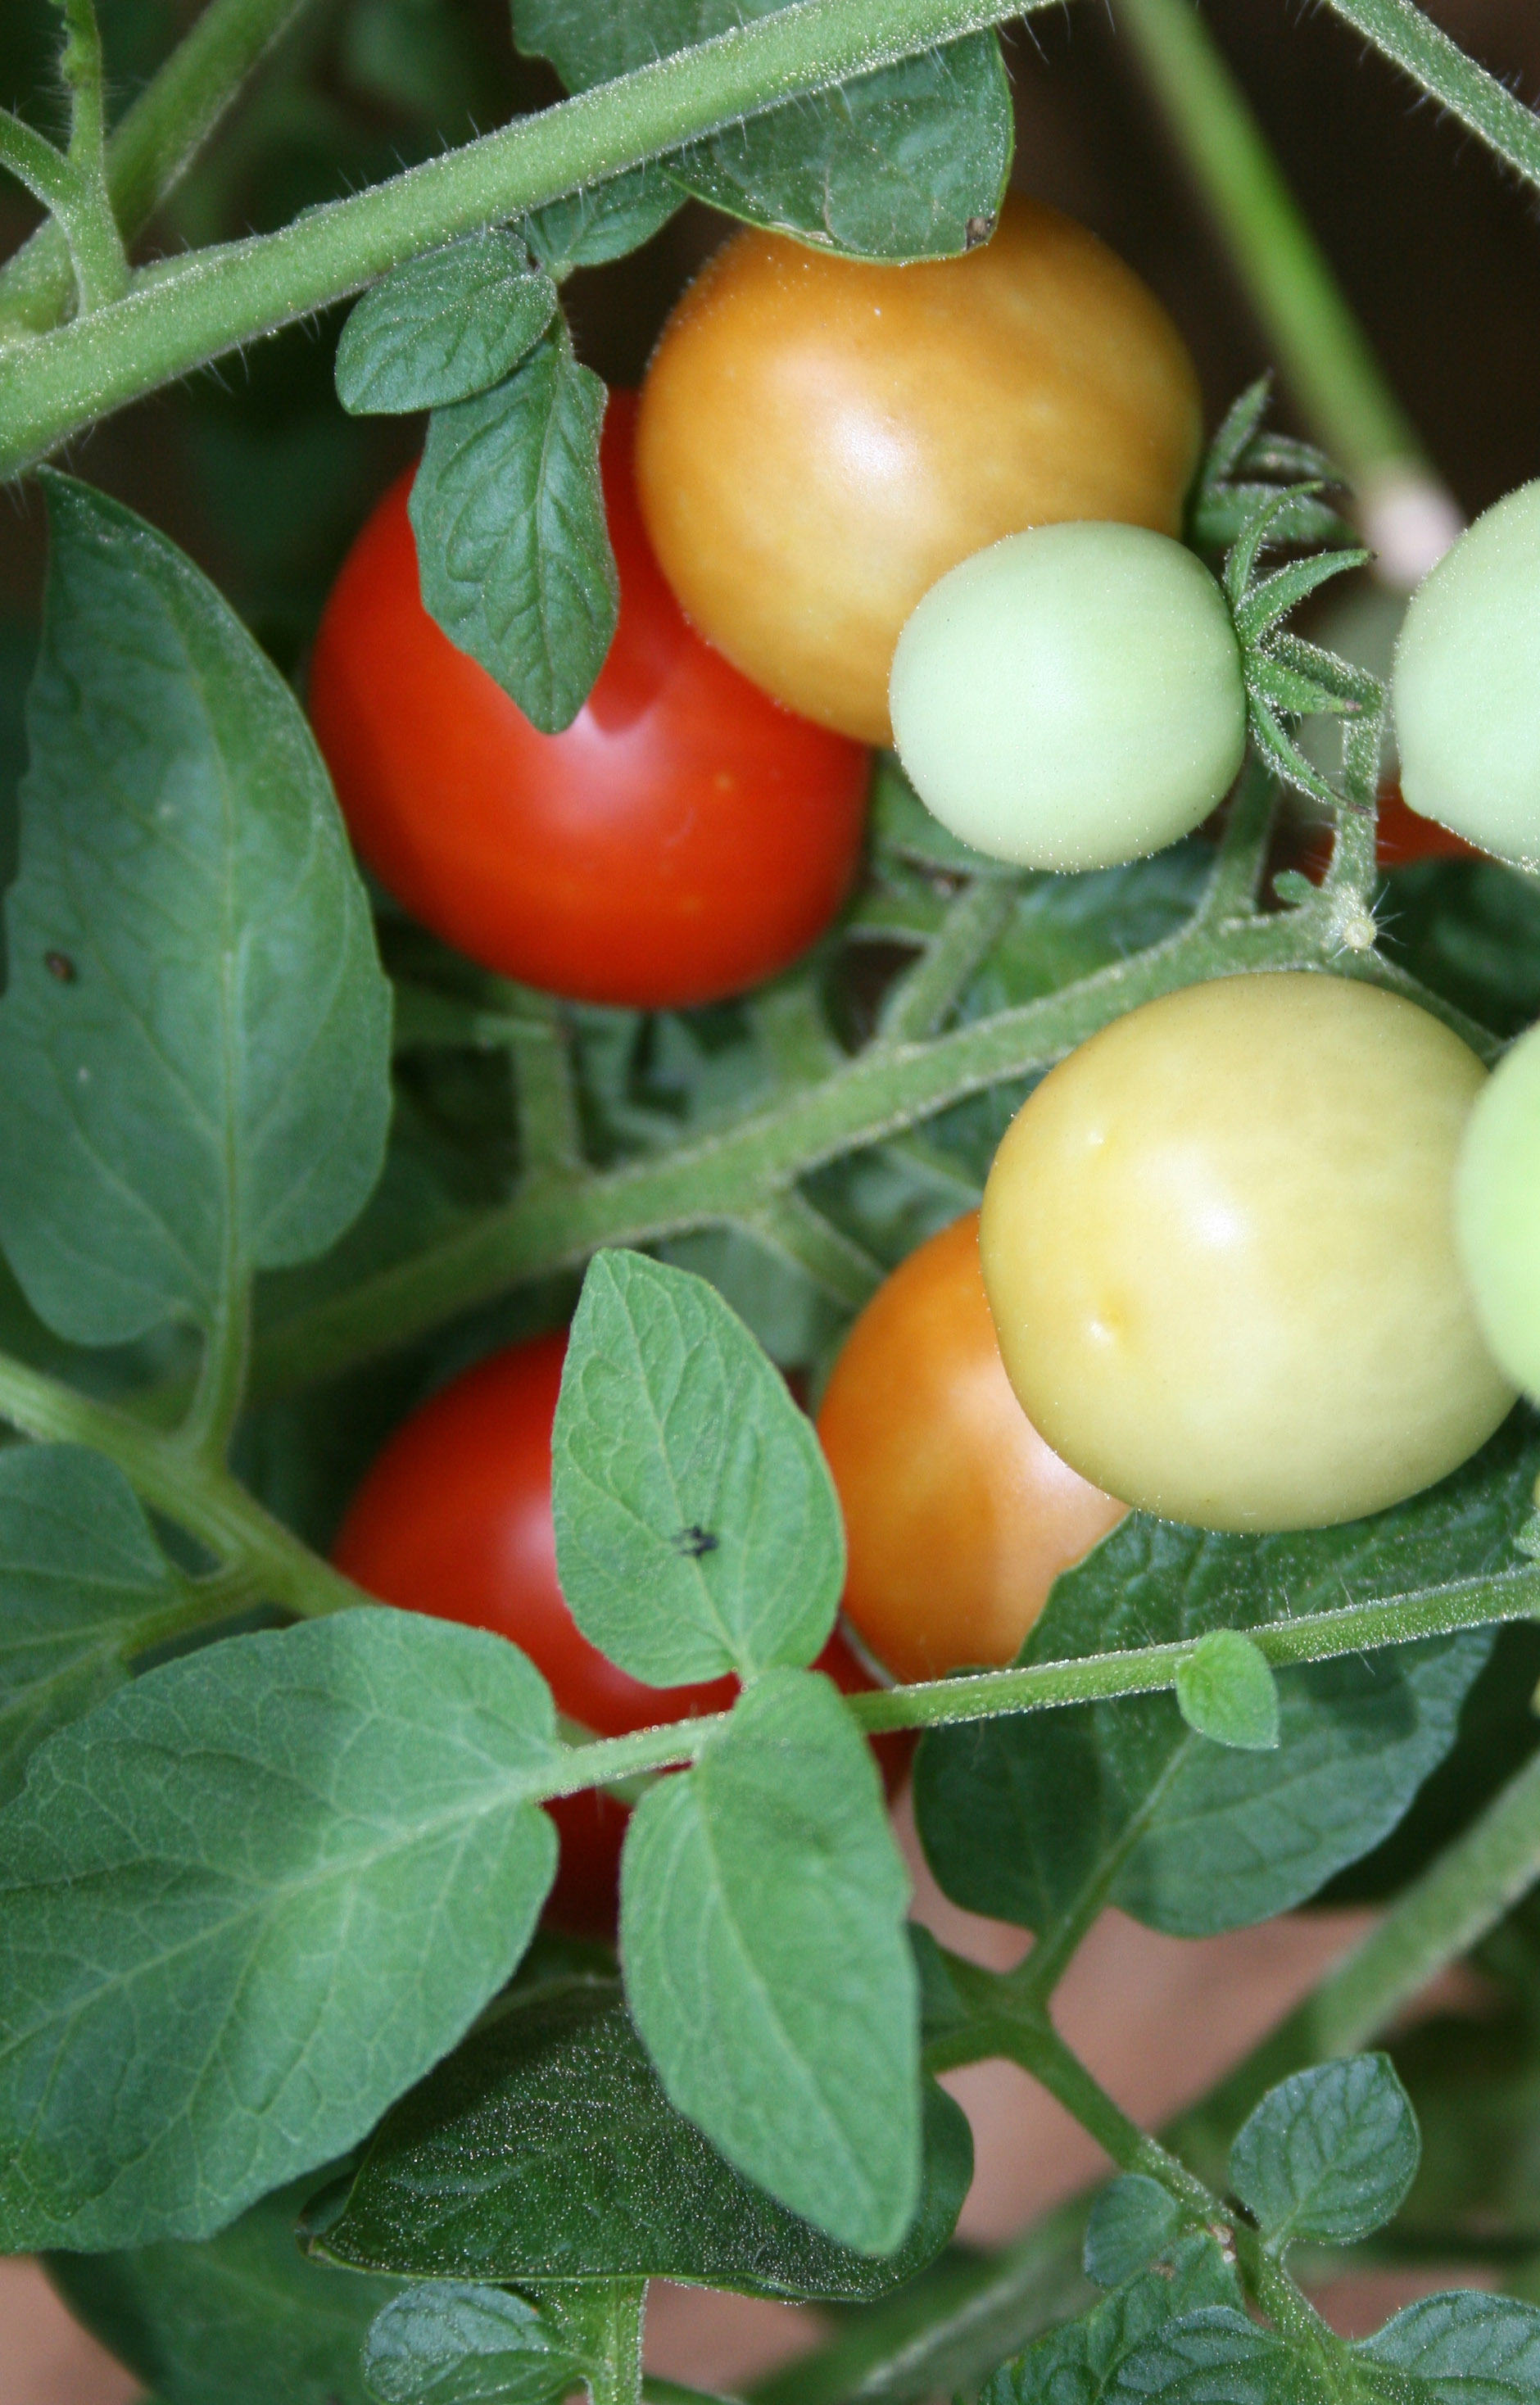 Tomatoes grow on vines and on trees. Tomato trees must be grown in frost free regions, so most Georgians won't be successful growing them, a UGA expert says.